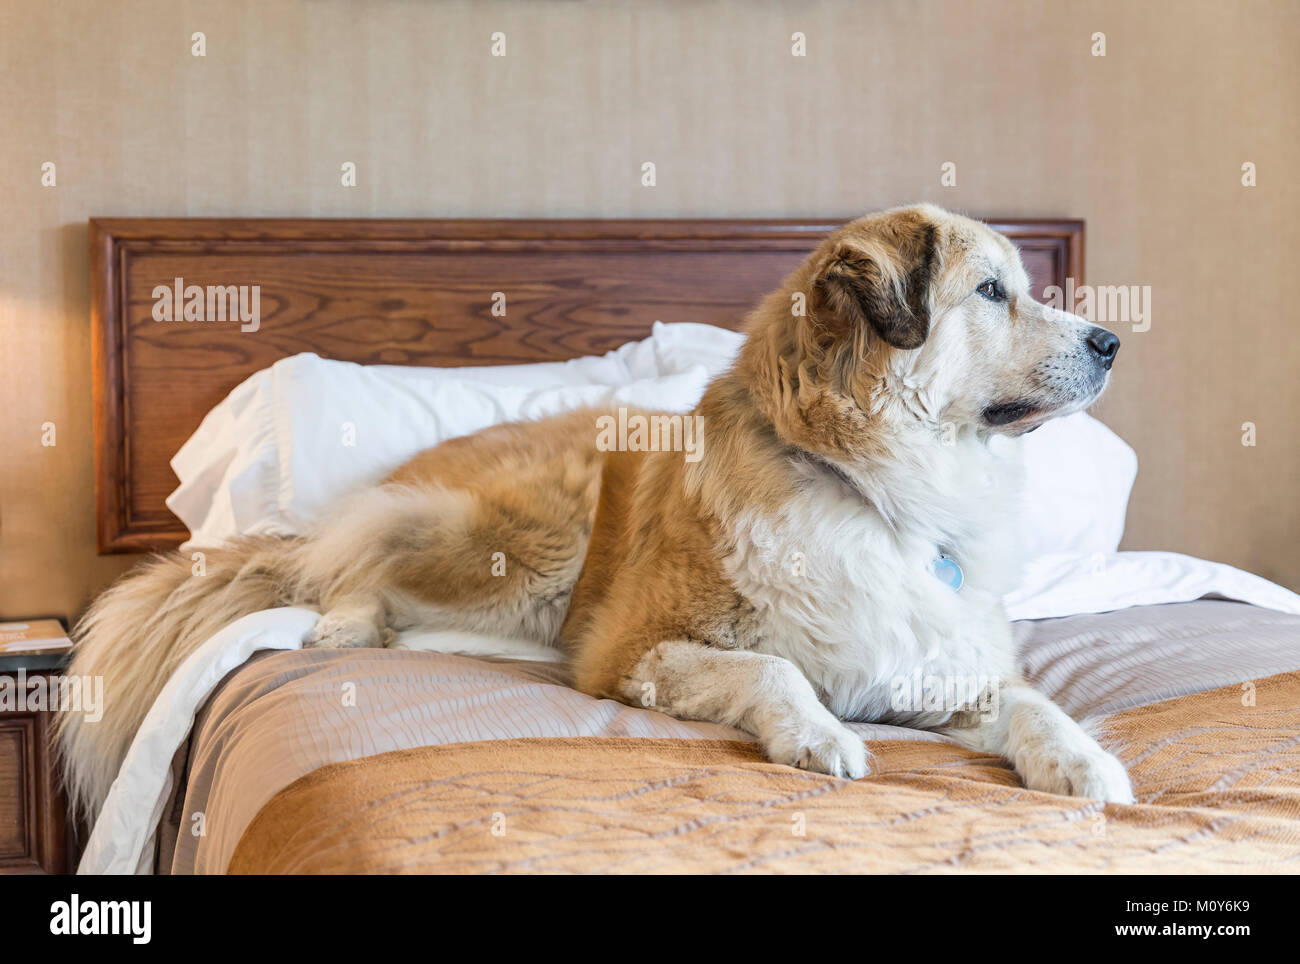 Large dog on a hotel room bed, Saskatchewan, Canada. - Stock Image